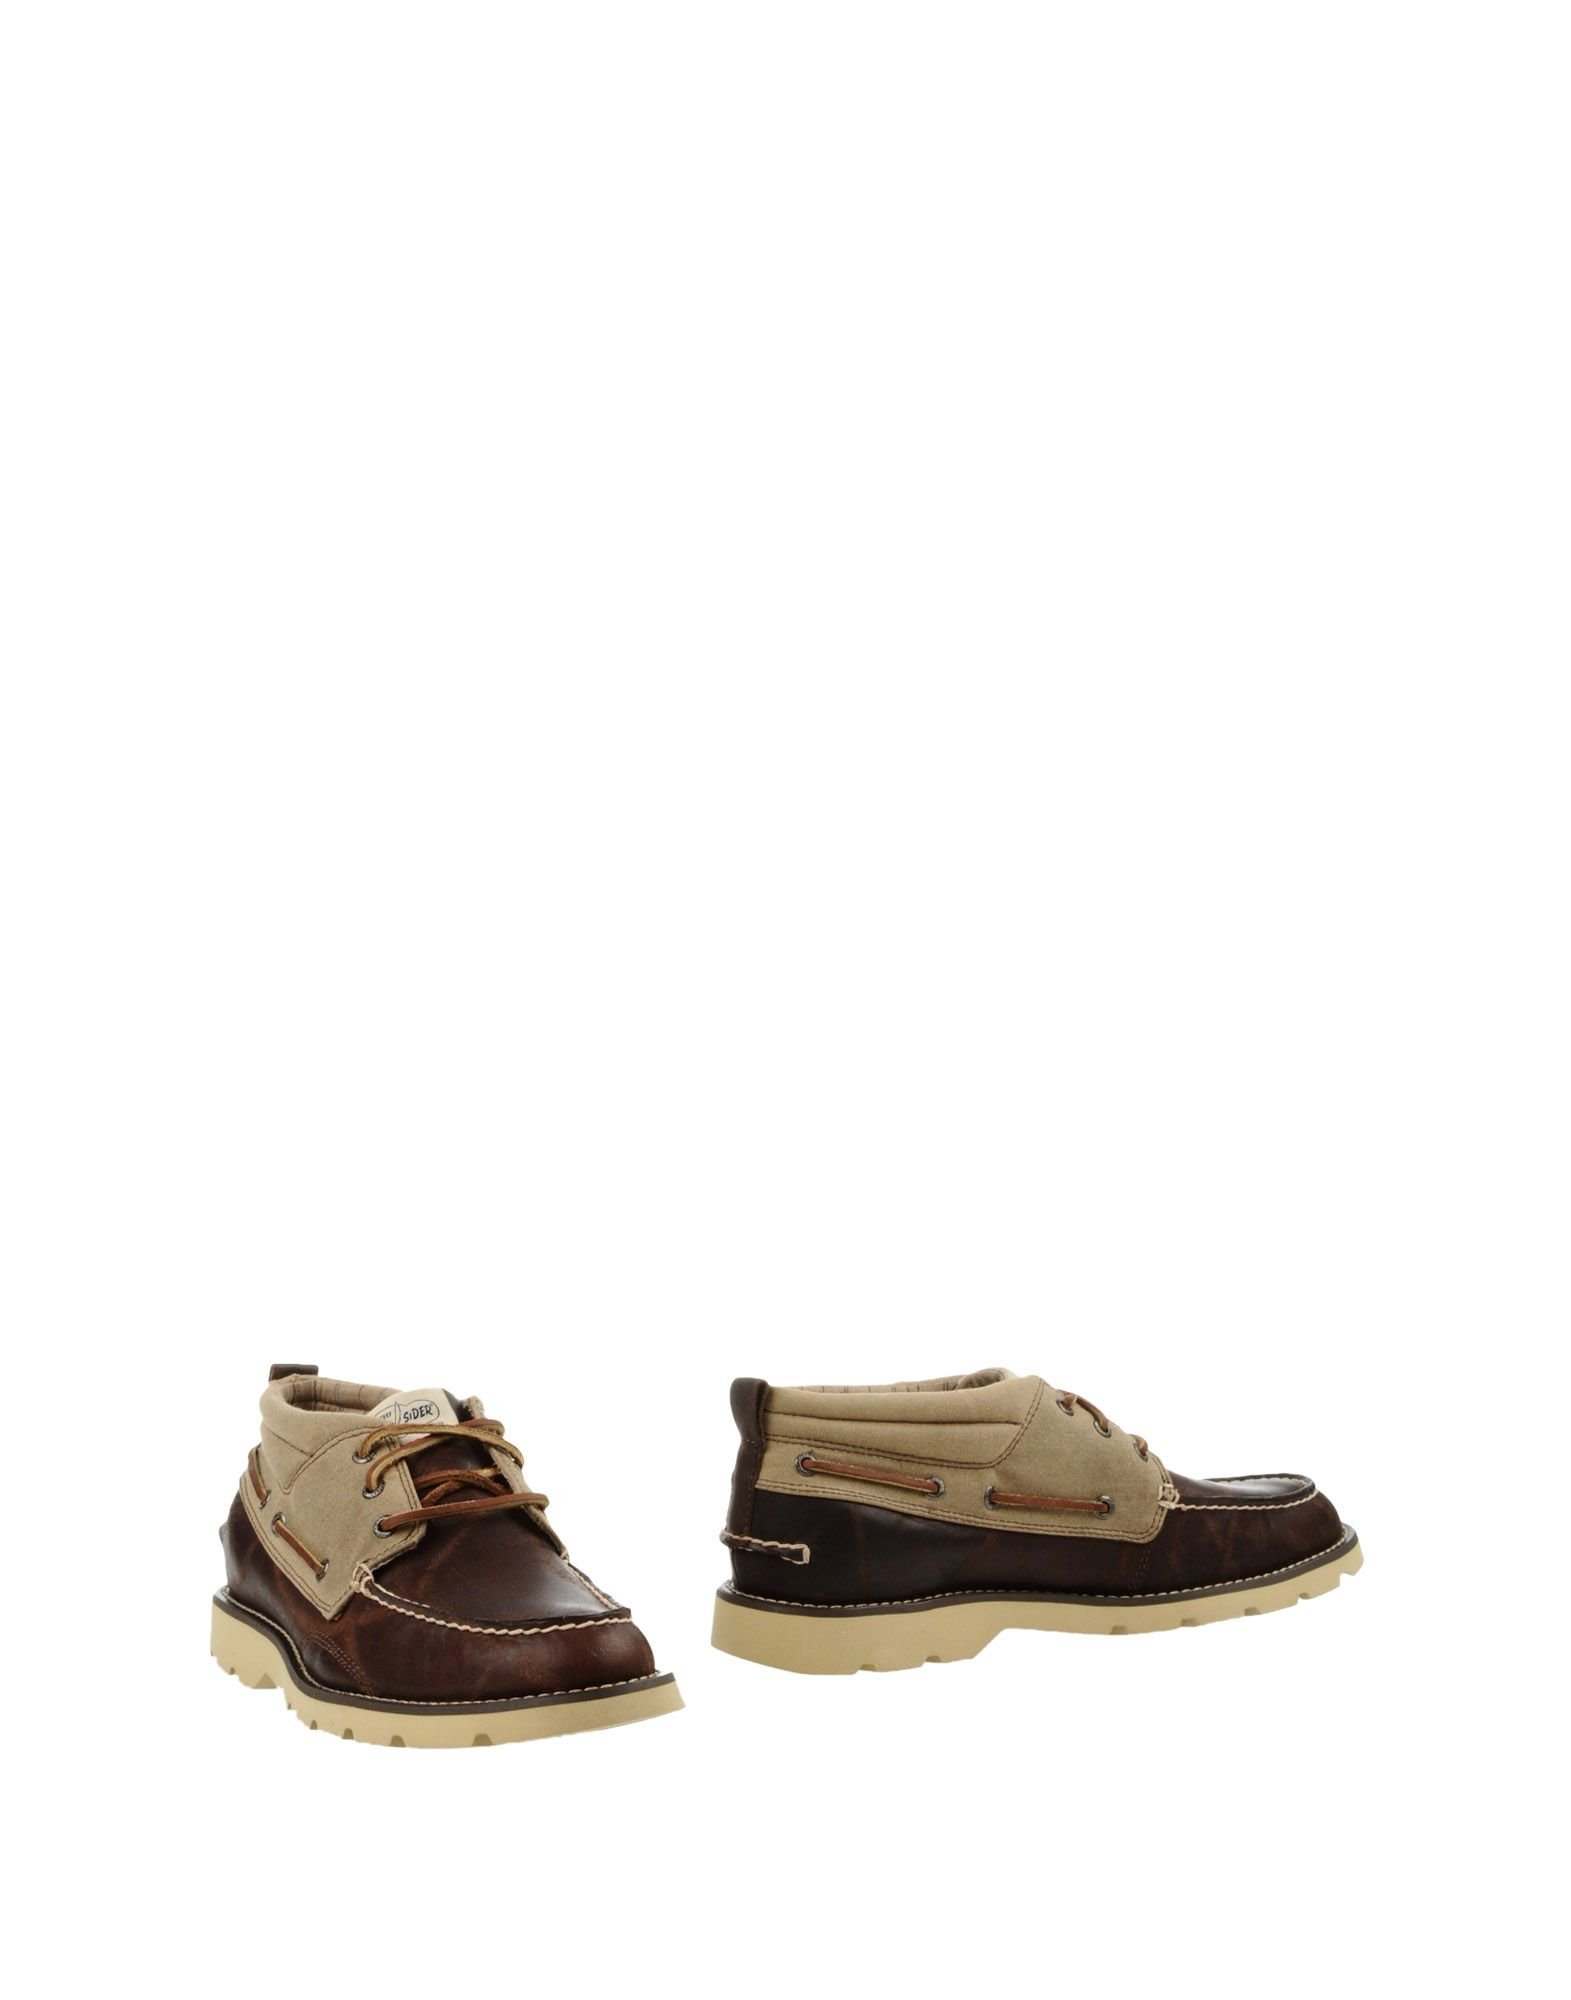 sperry top sider ankle boots in brown for lyst